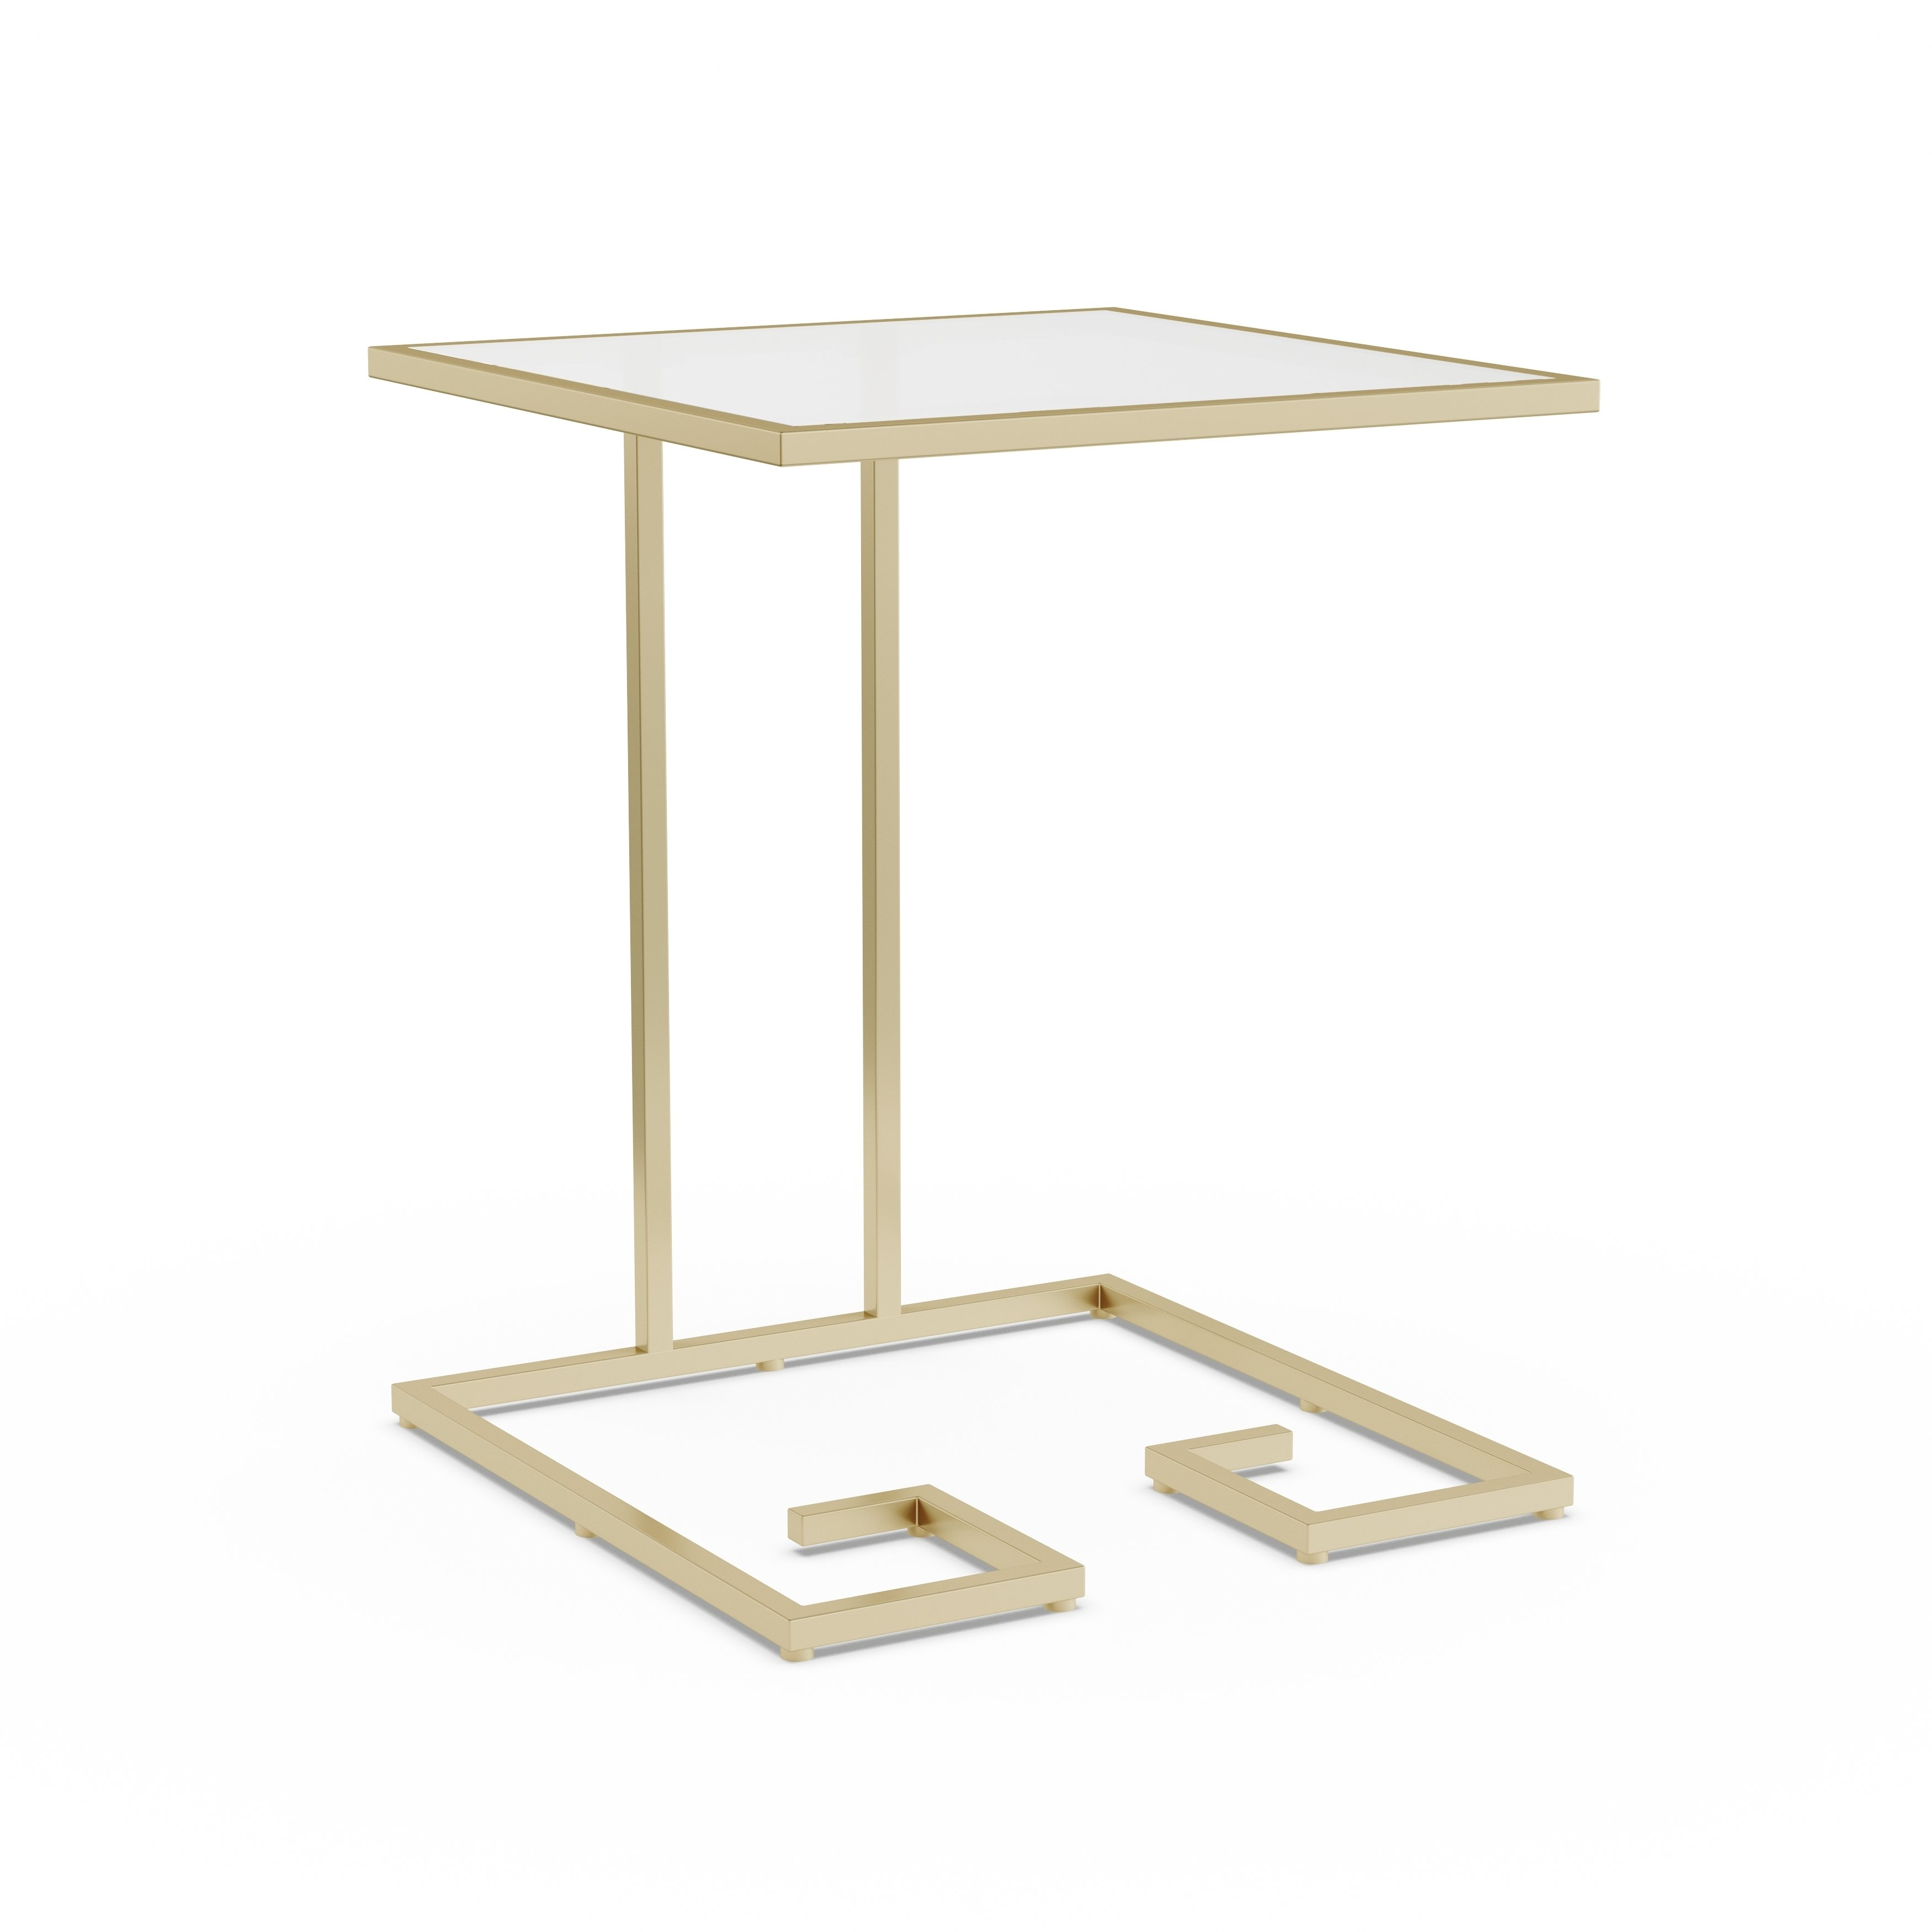 the curated nomad morsun glass top accent table porch den little five points mclendon free shipping today mirrored nightstand home goods small white marble round cotton tablecloth